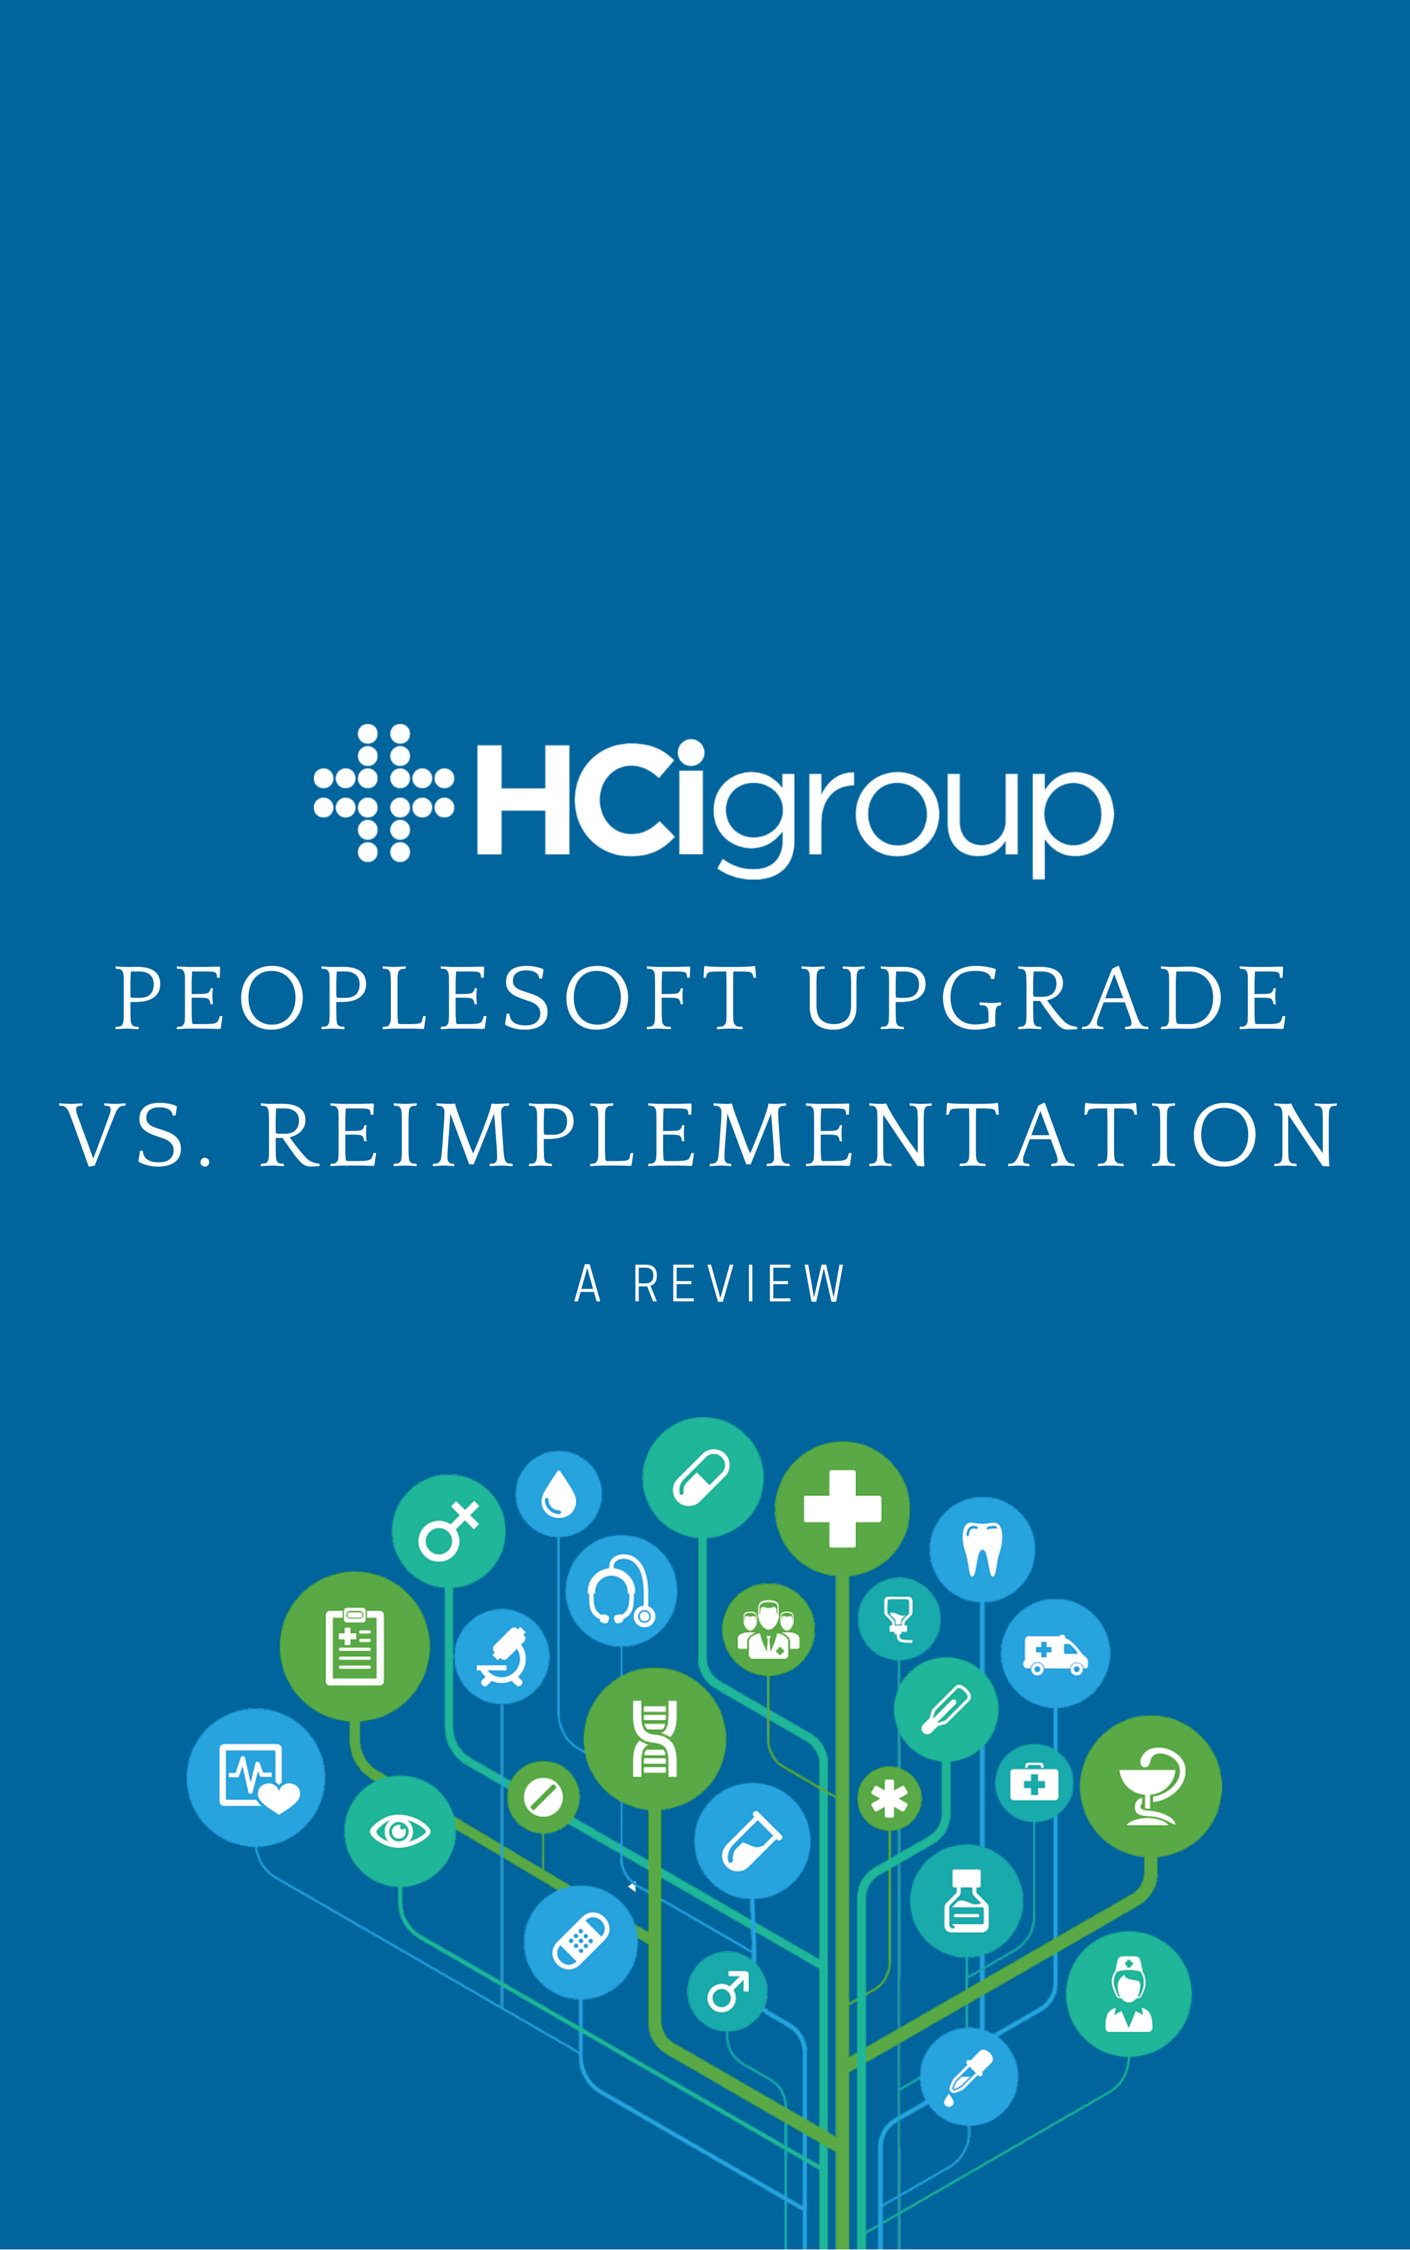 PeopleSoft Upgrade vs. Reimplementation Guide